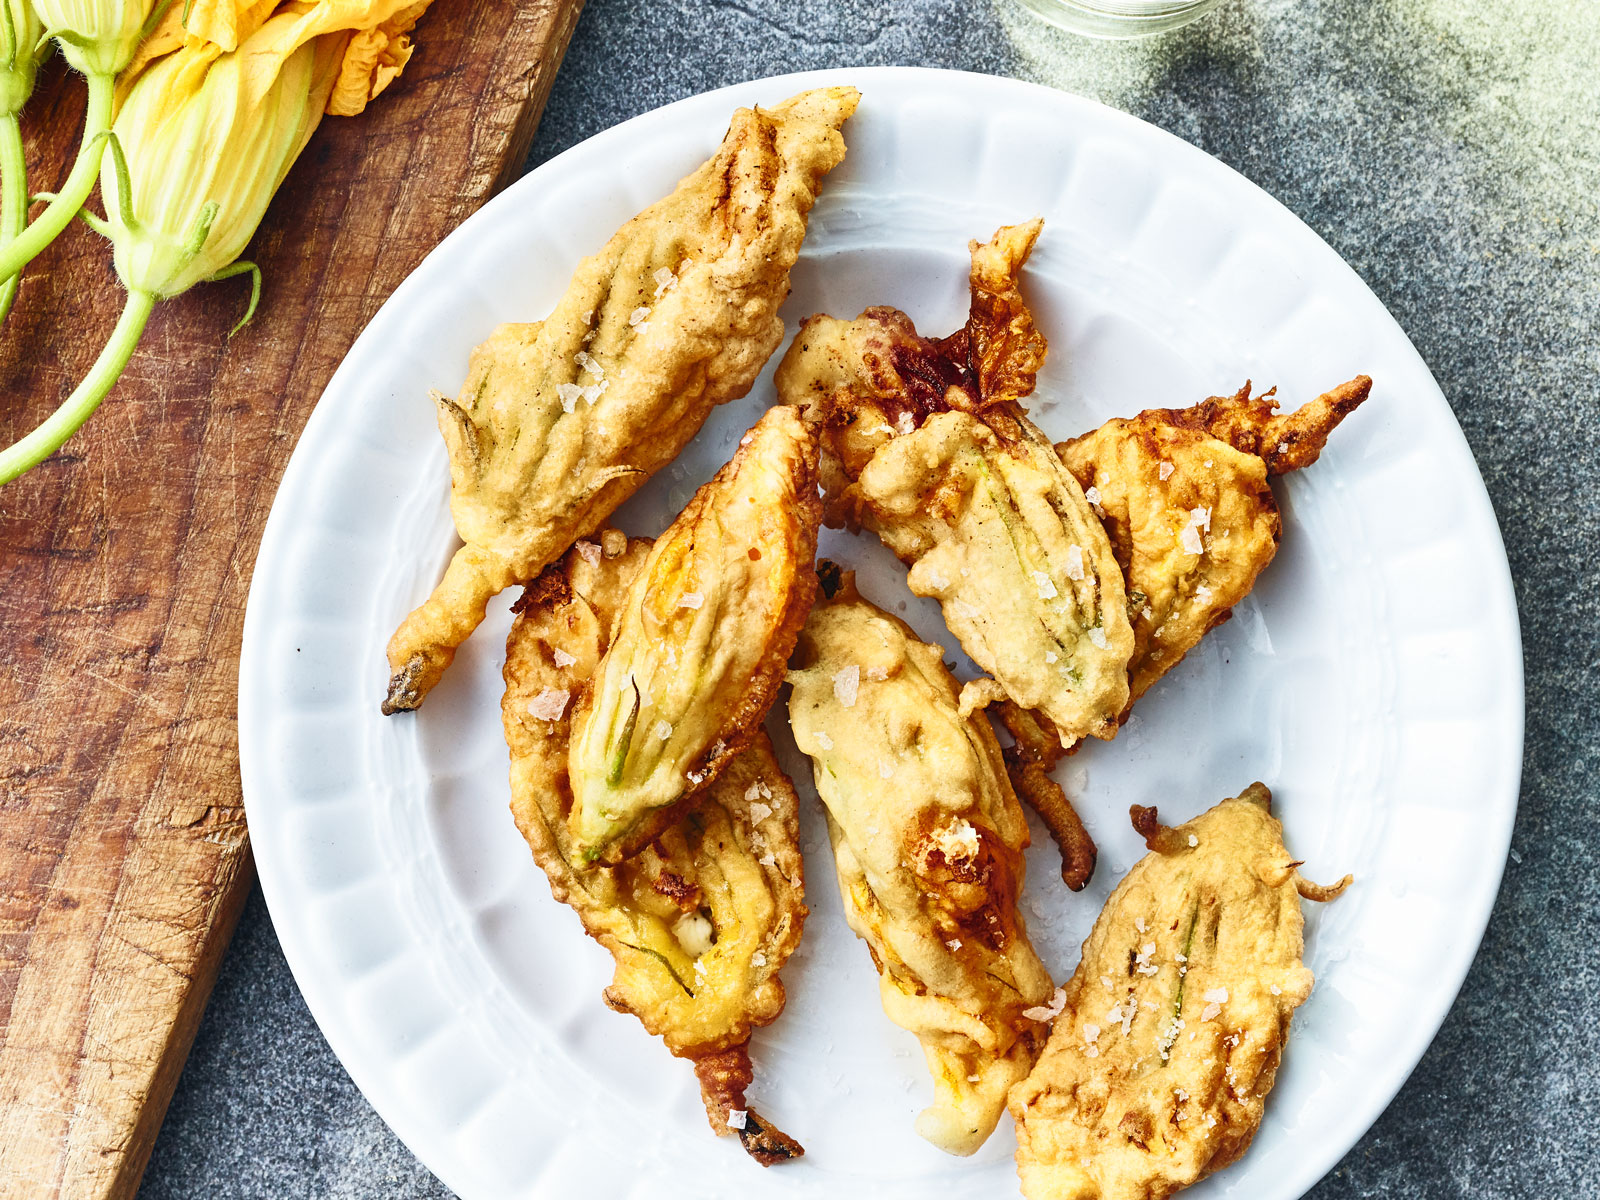 Fried Zucchini Blossoms with Prosciutto and Mozzarella